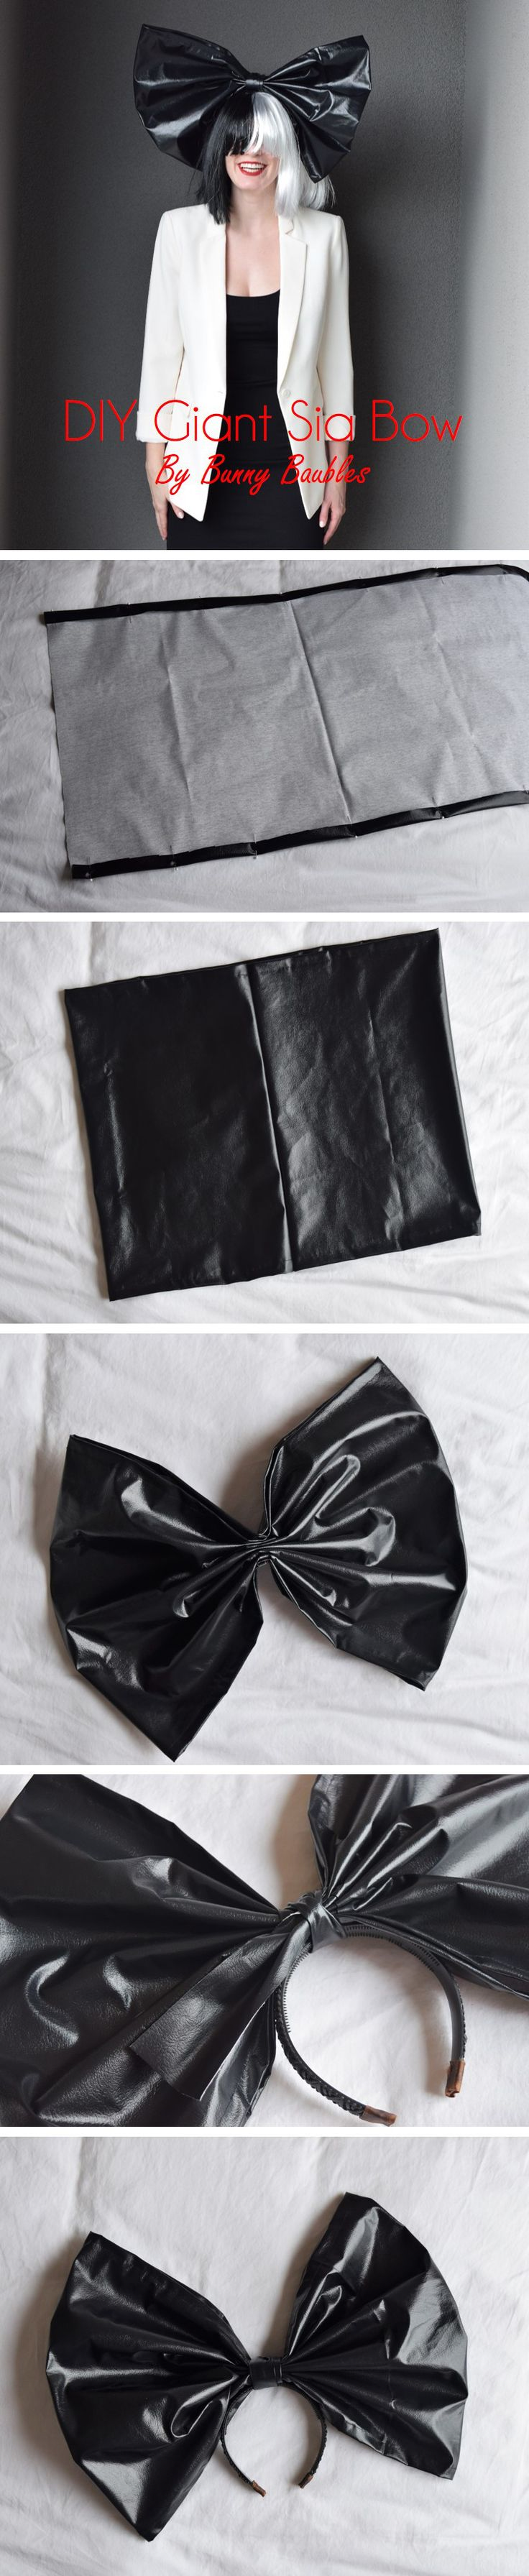 DIY Giant Sia Bow headband - full tutorial and where to get the rest of the costume items